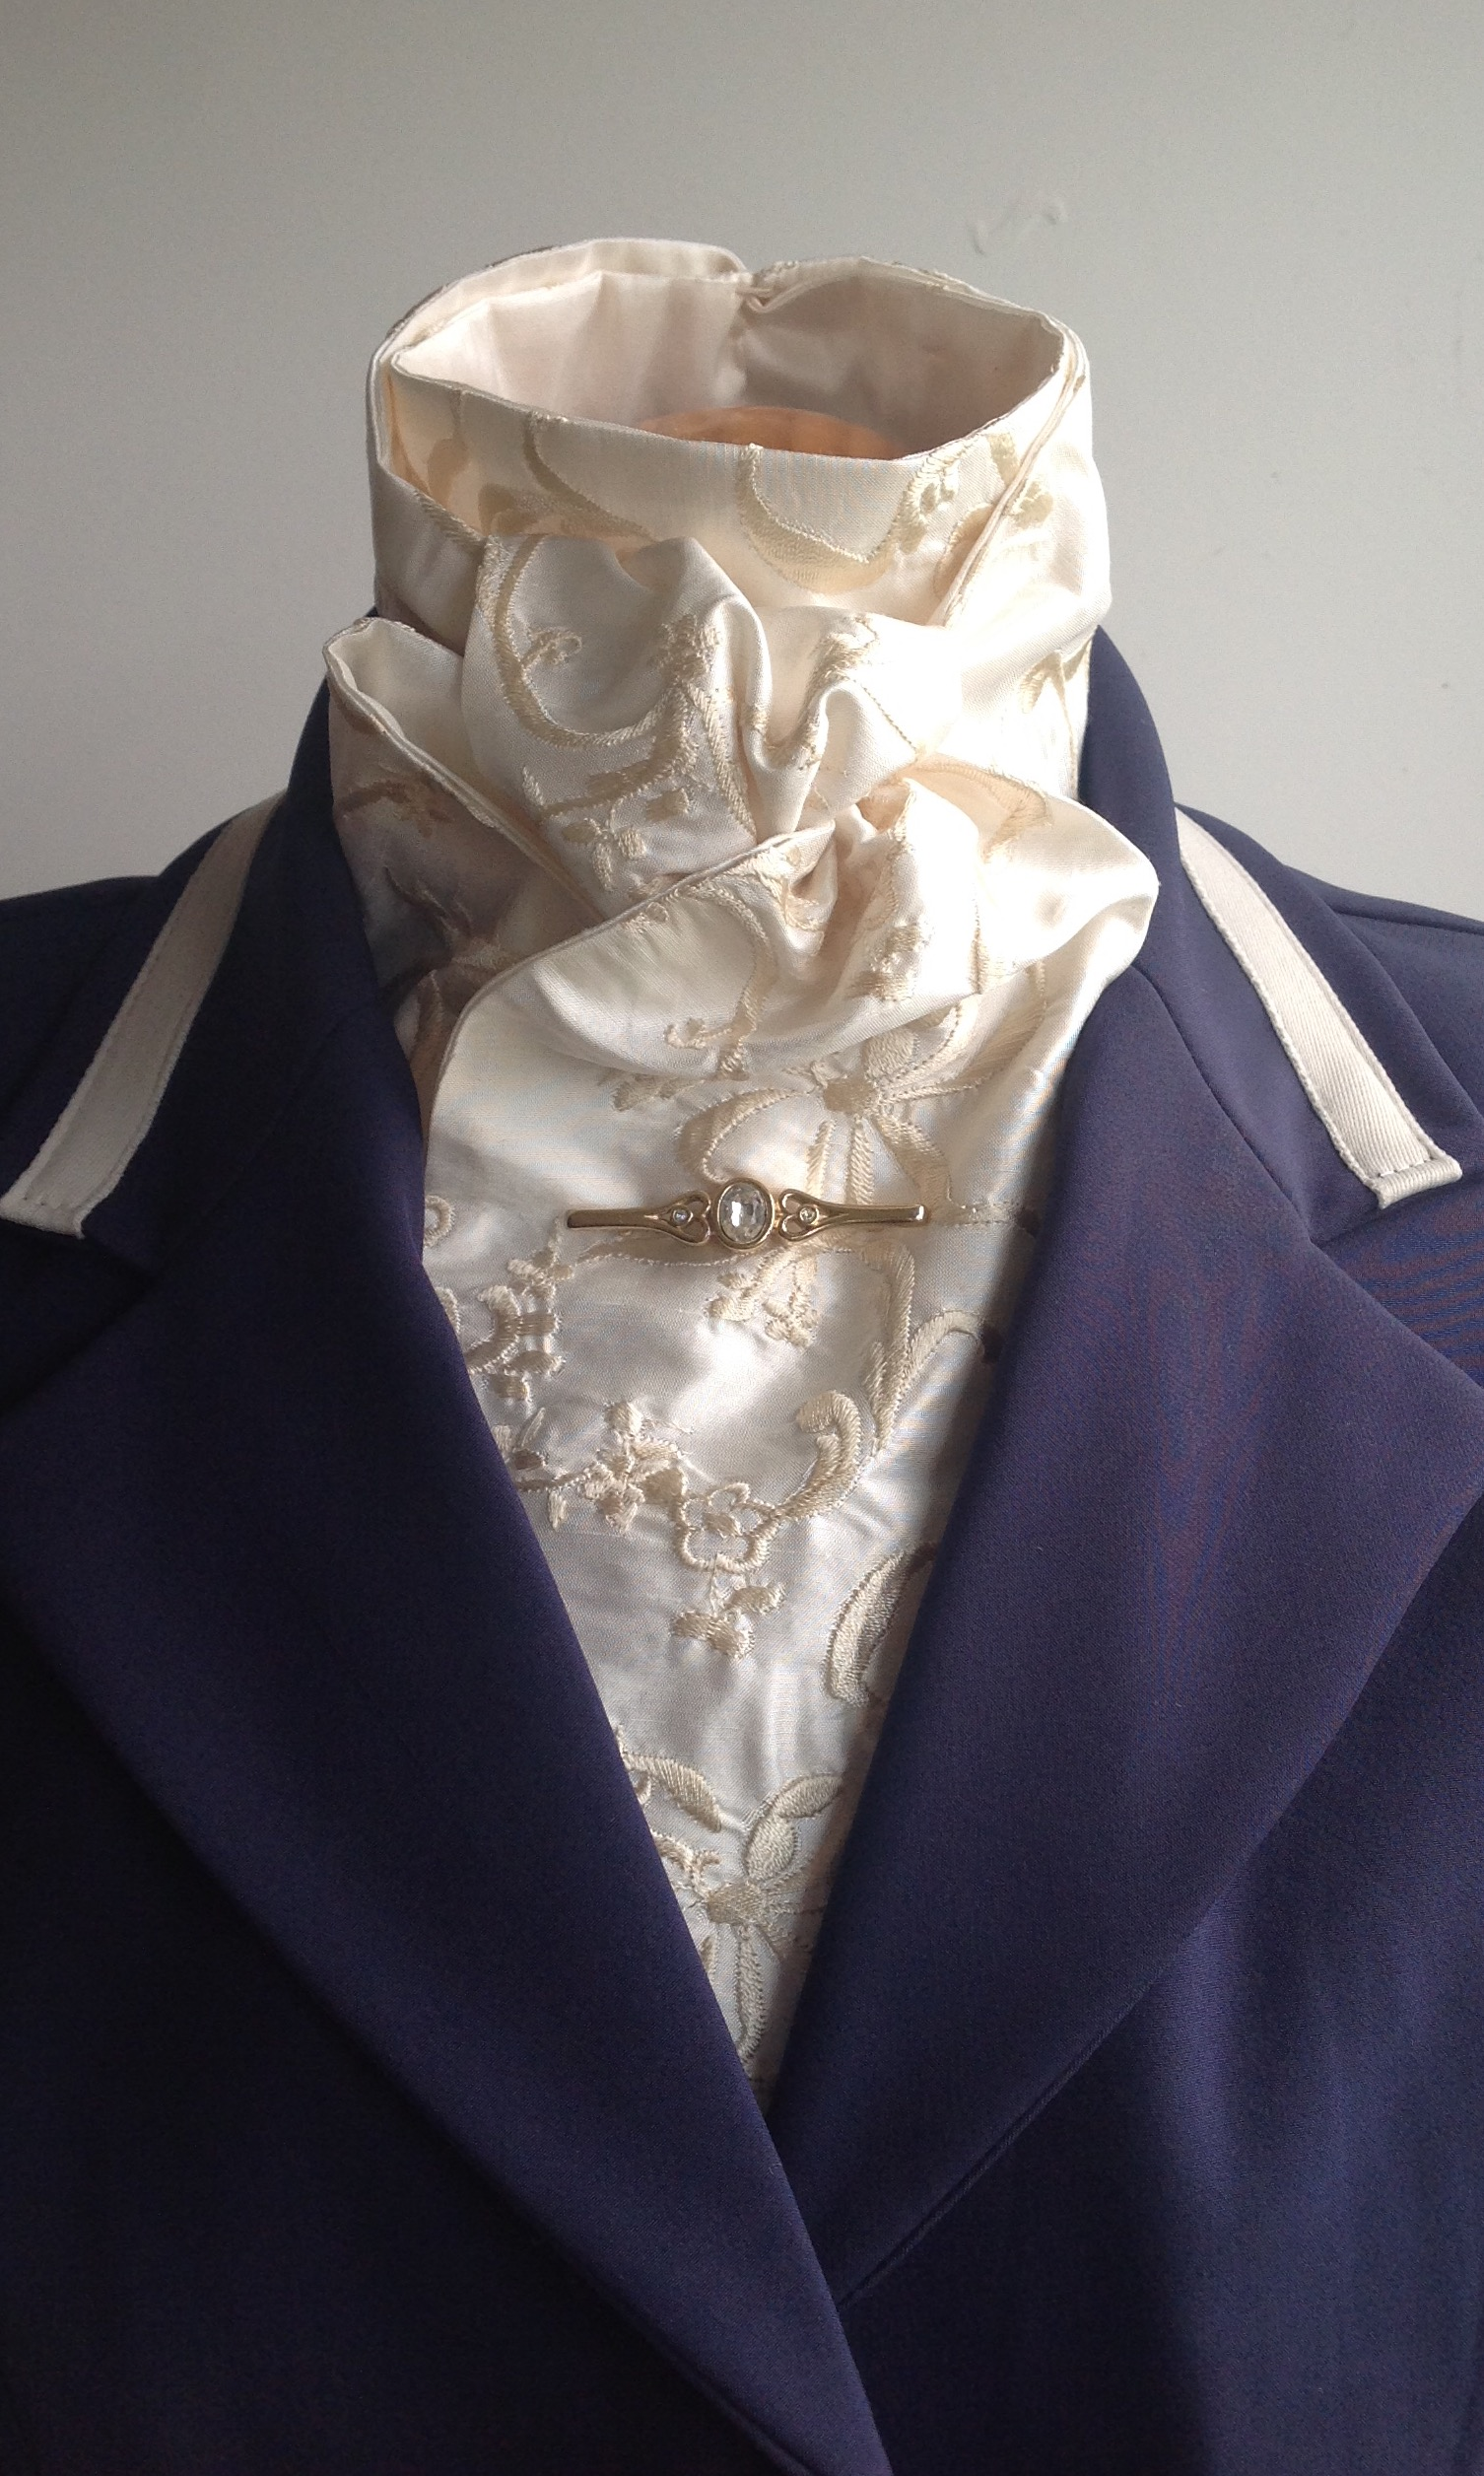 Shaped to tie 100% silk stock - ivory with pale gold floral embroidery